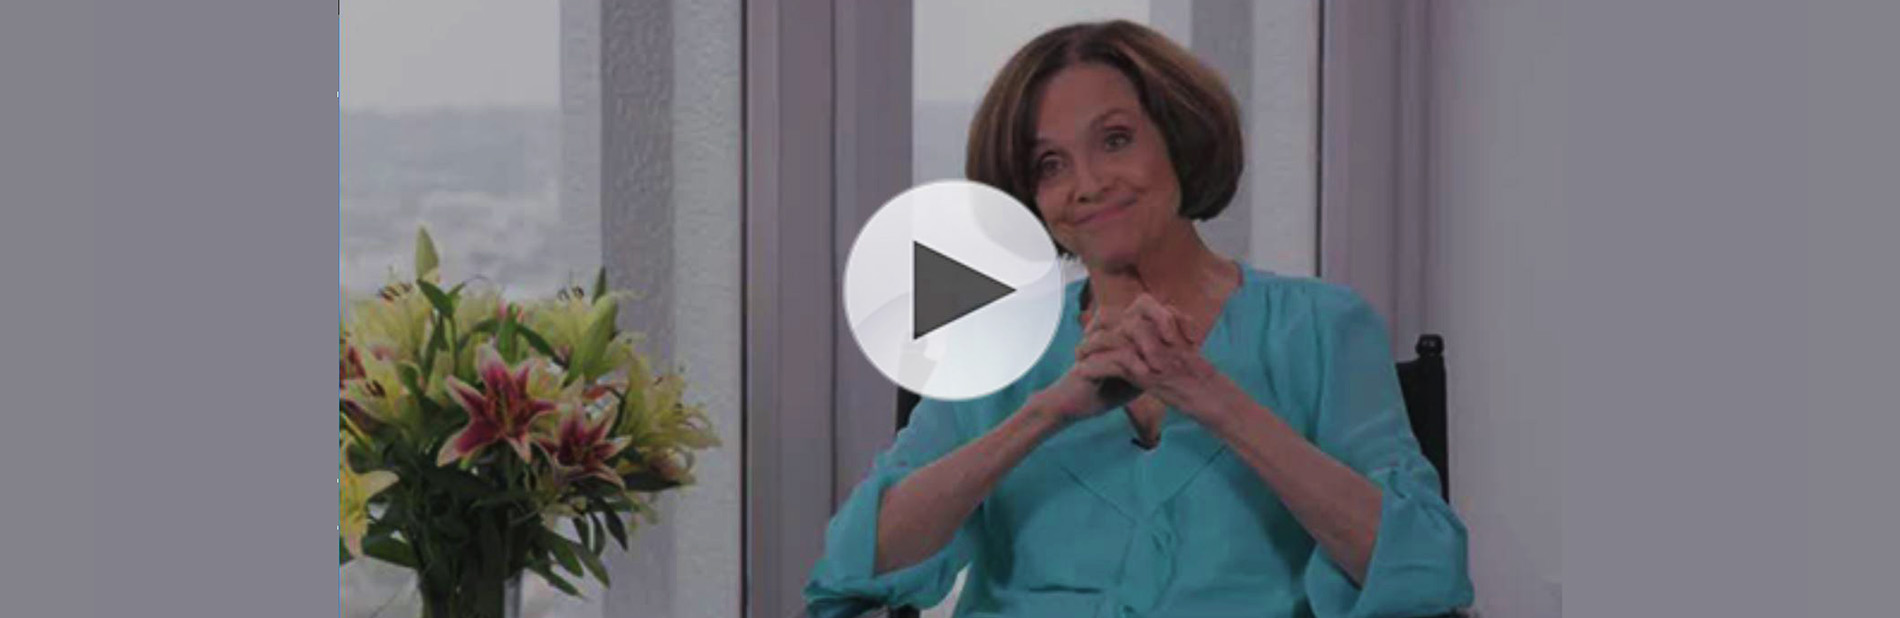 Celebrity LUNG FORCE partner Valerie Harper encourages CVS Pharmacy customers to go in-store to donate before June 11.